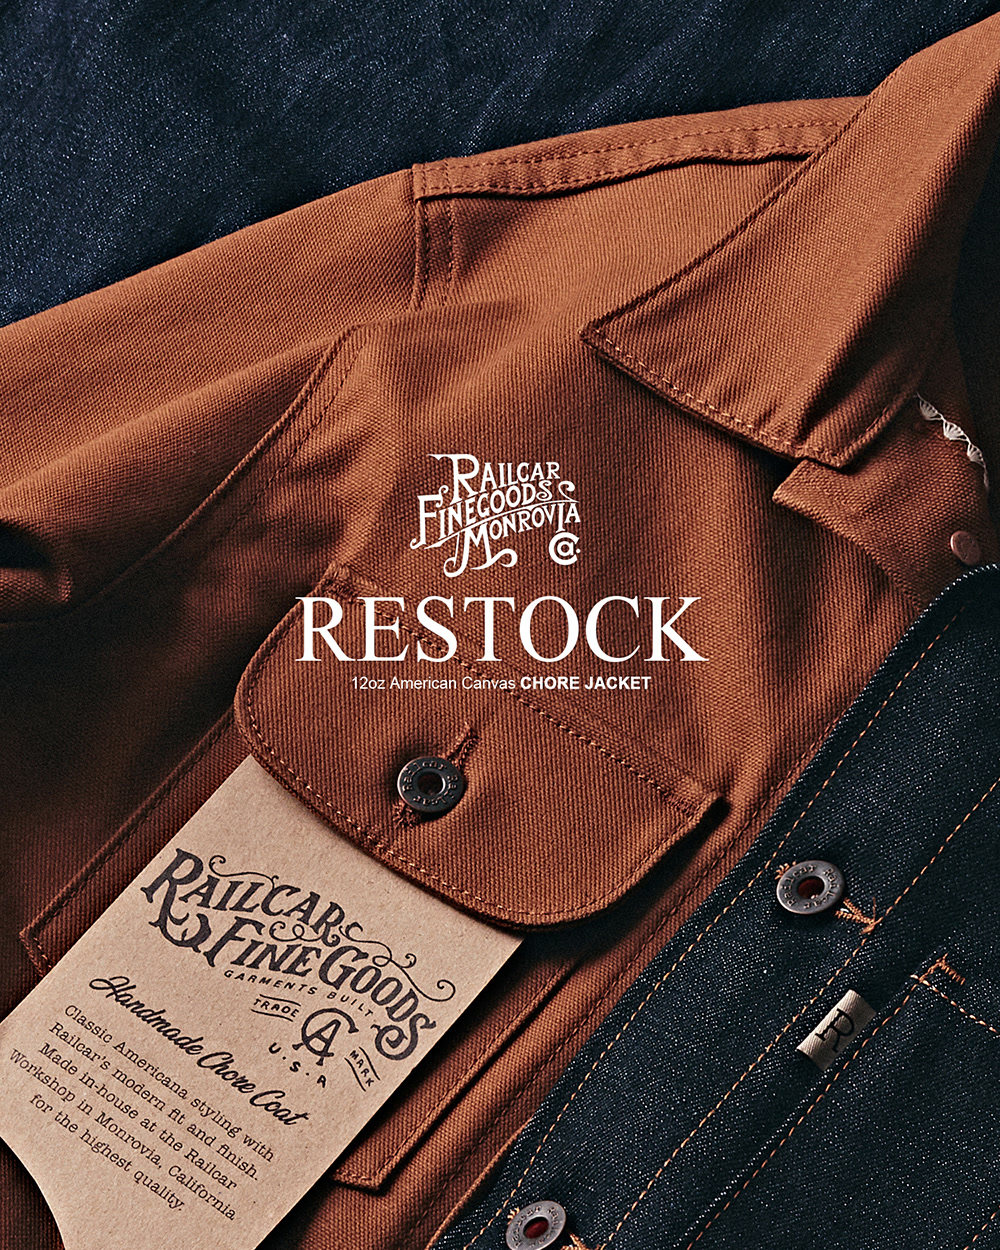 [RAILCAR FINE GOODS] Canvas Chore Jacket Restock